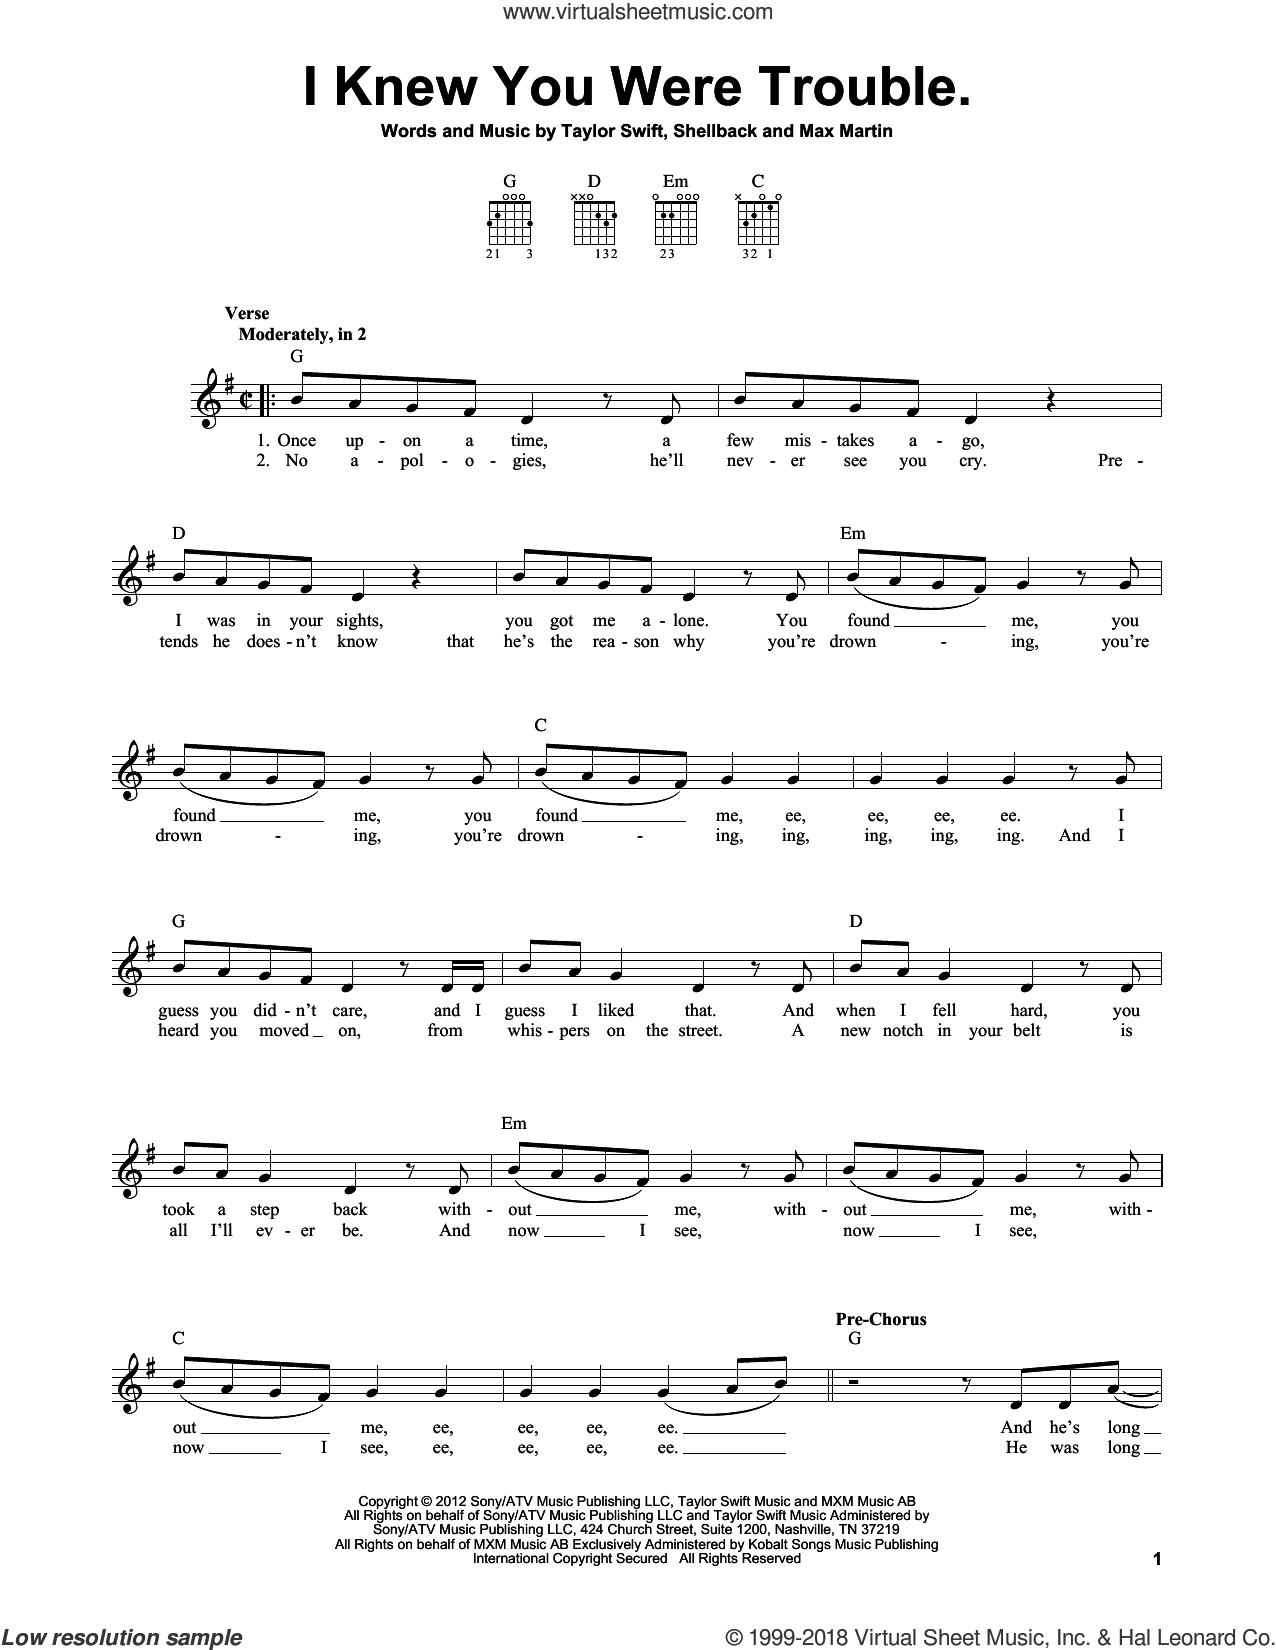 I Knew You Were Trouble sheet music for guitar solo (chords) by Taylor Swift, Max Martin and Shellback, easy guitar (chords)